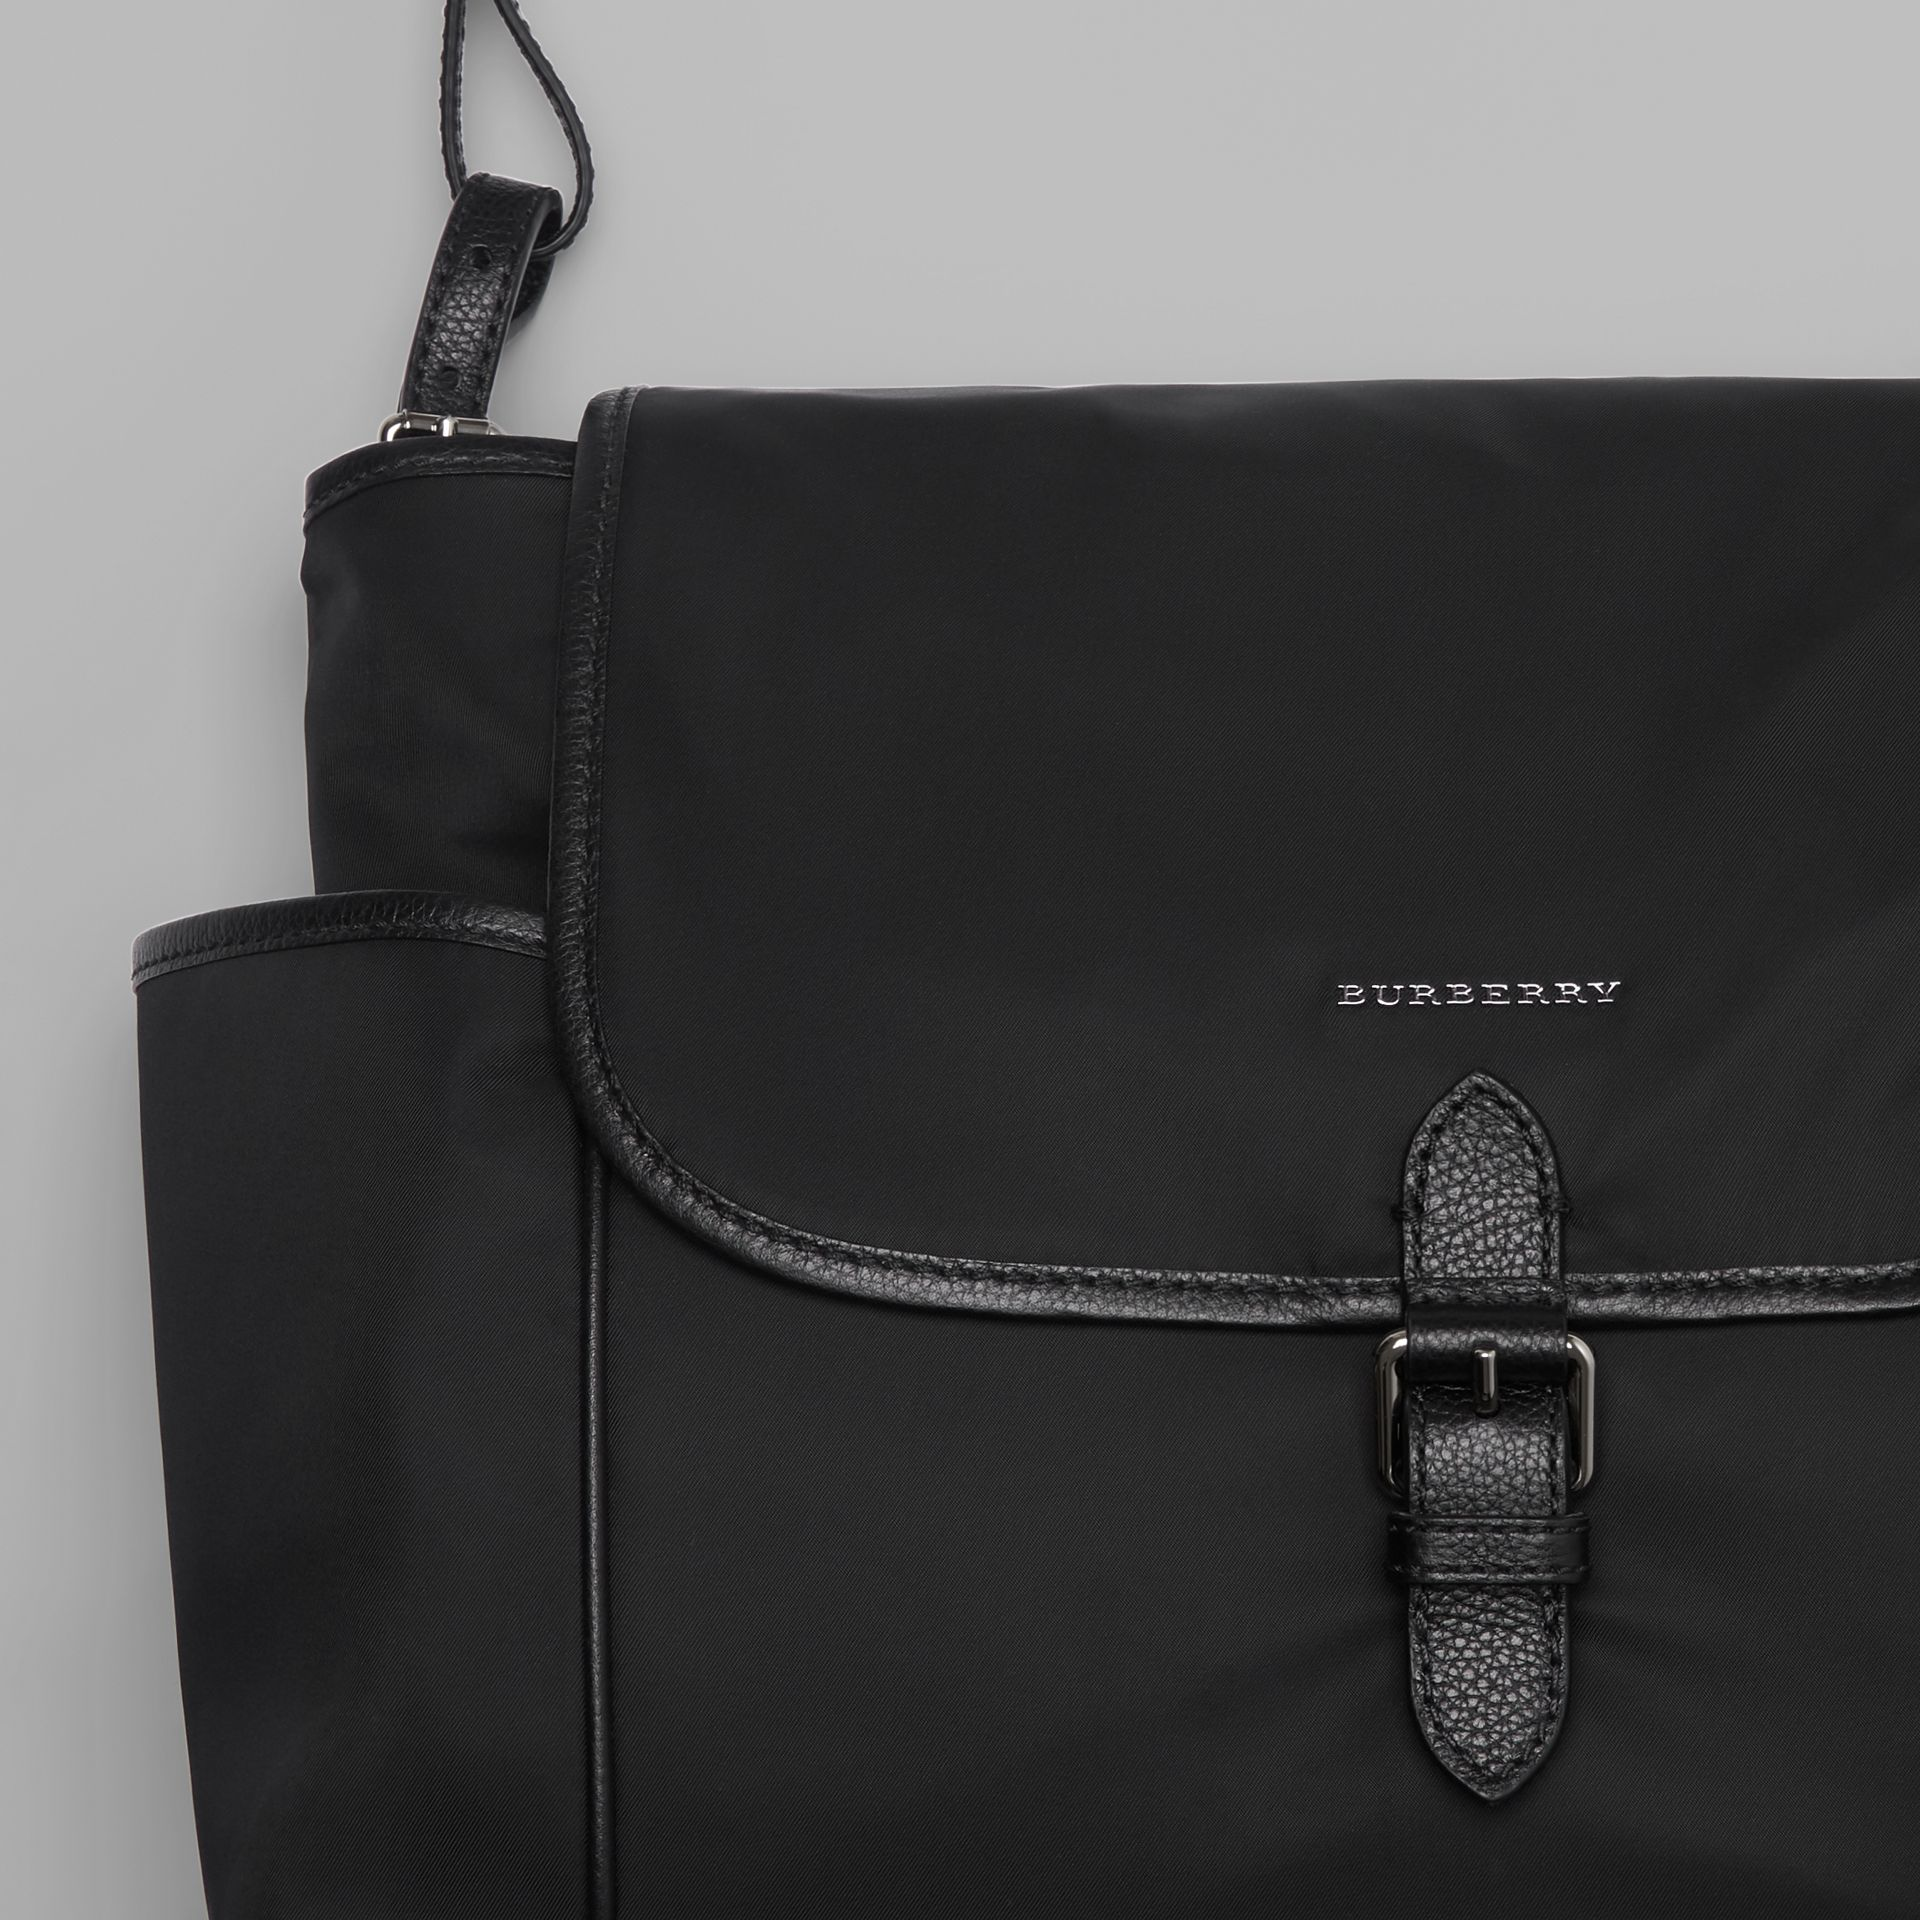 Leather Trim Baby Changing Shoulder Bag in Black - Children | Burberry Australia - gallery image 1